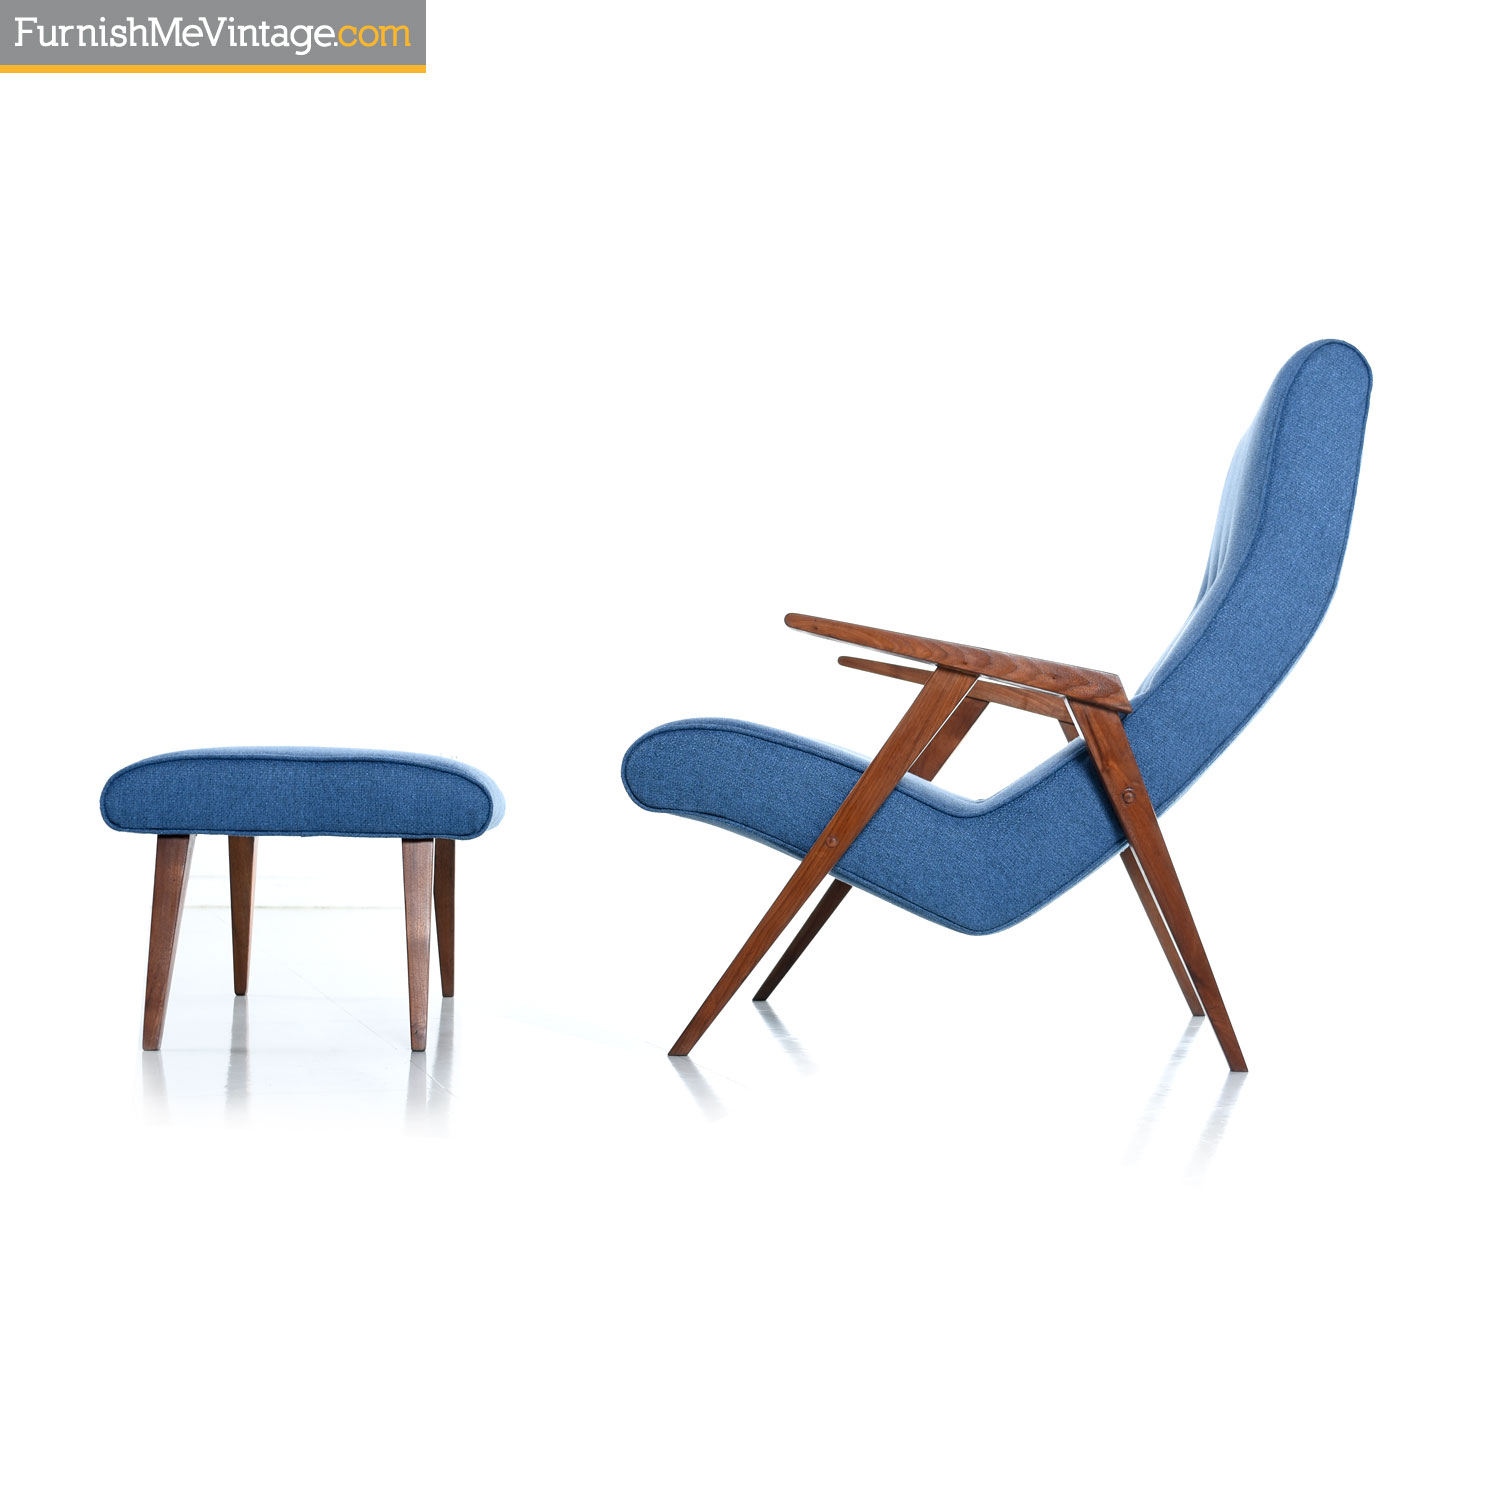 Restored Jens Risom Style Compass Leg Scoop Lounge Armchair And Ottoman Throughout Modern Armchairs And Ottoman (View 4 of 15)